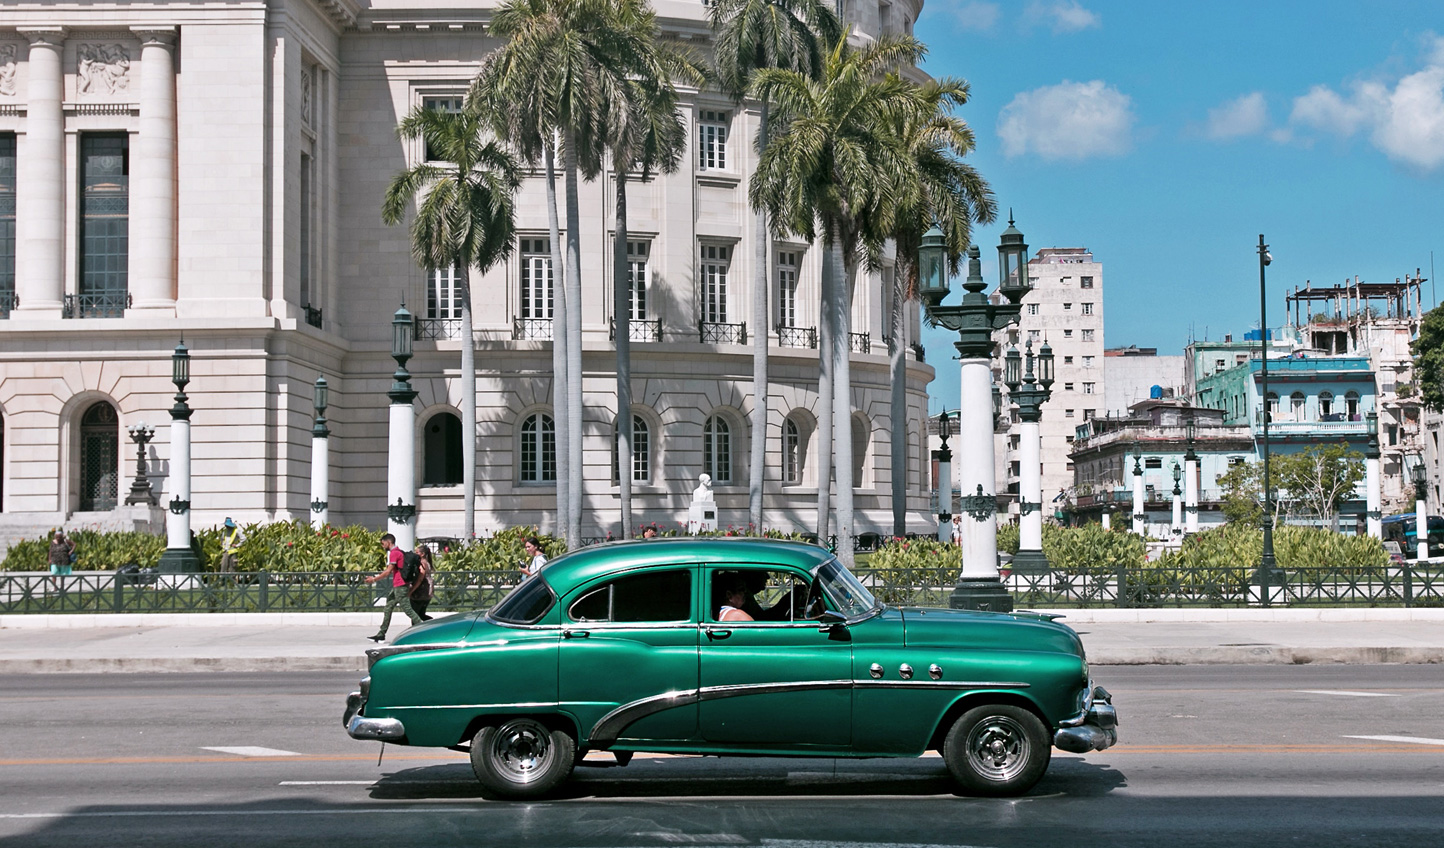 Explore Havana by classic car